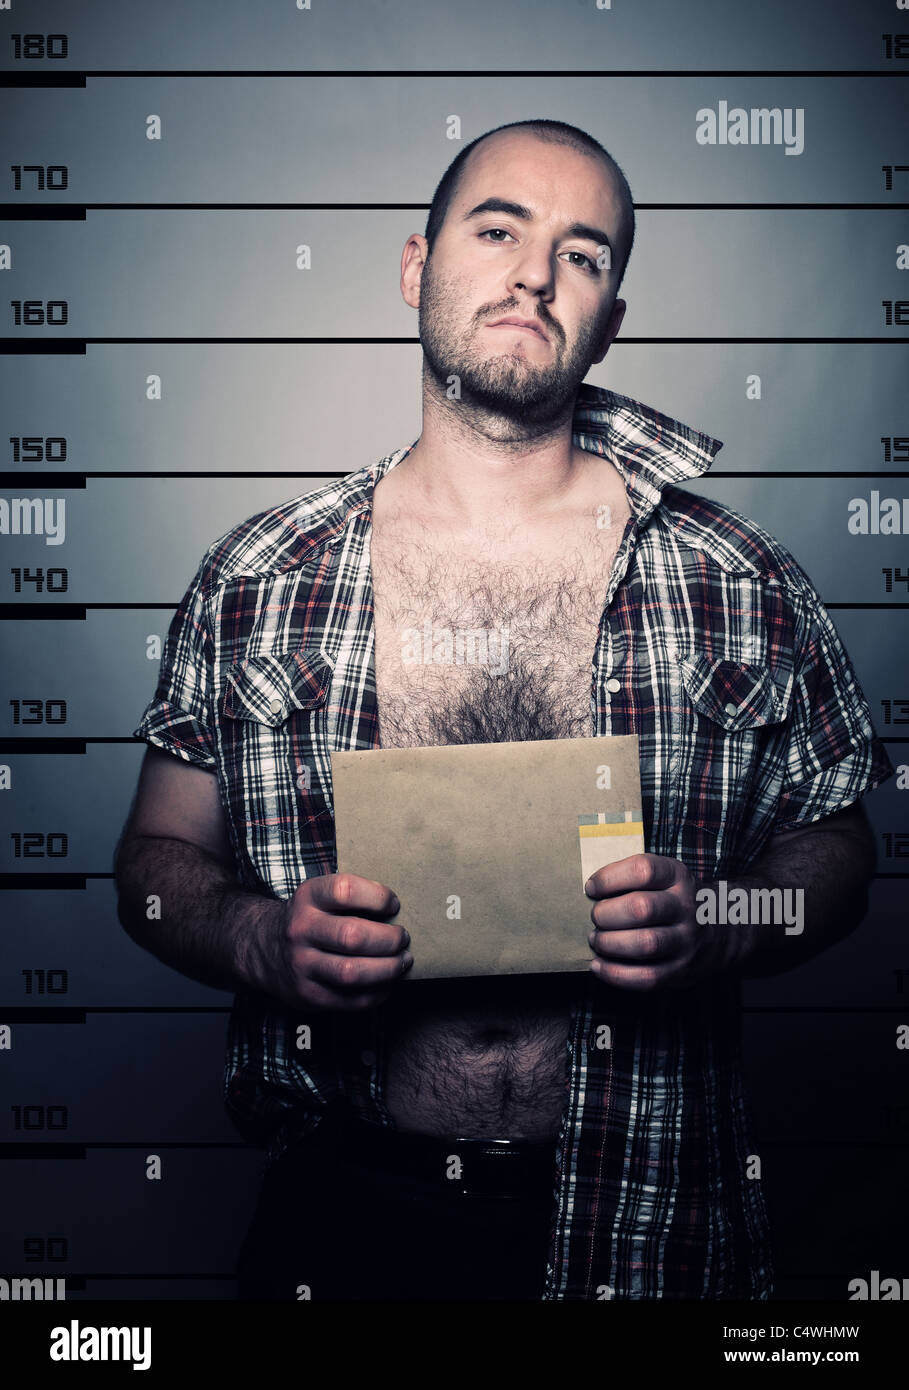 classic police photo of arrested criminal - Stock Image